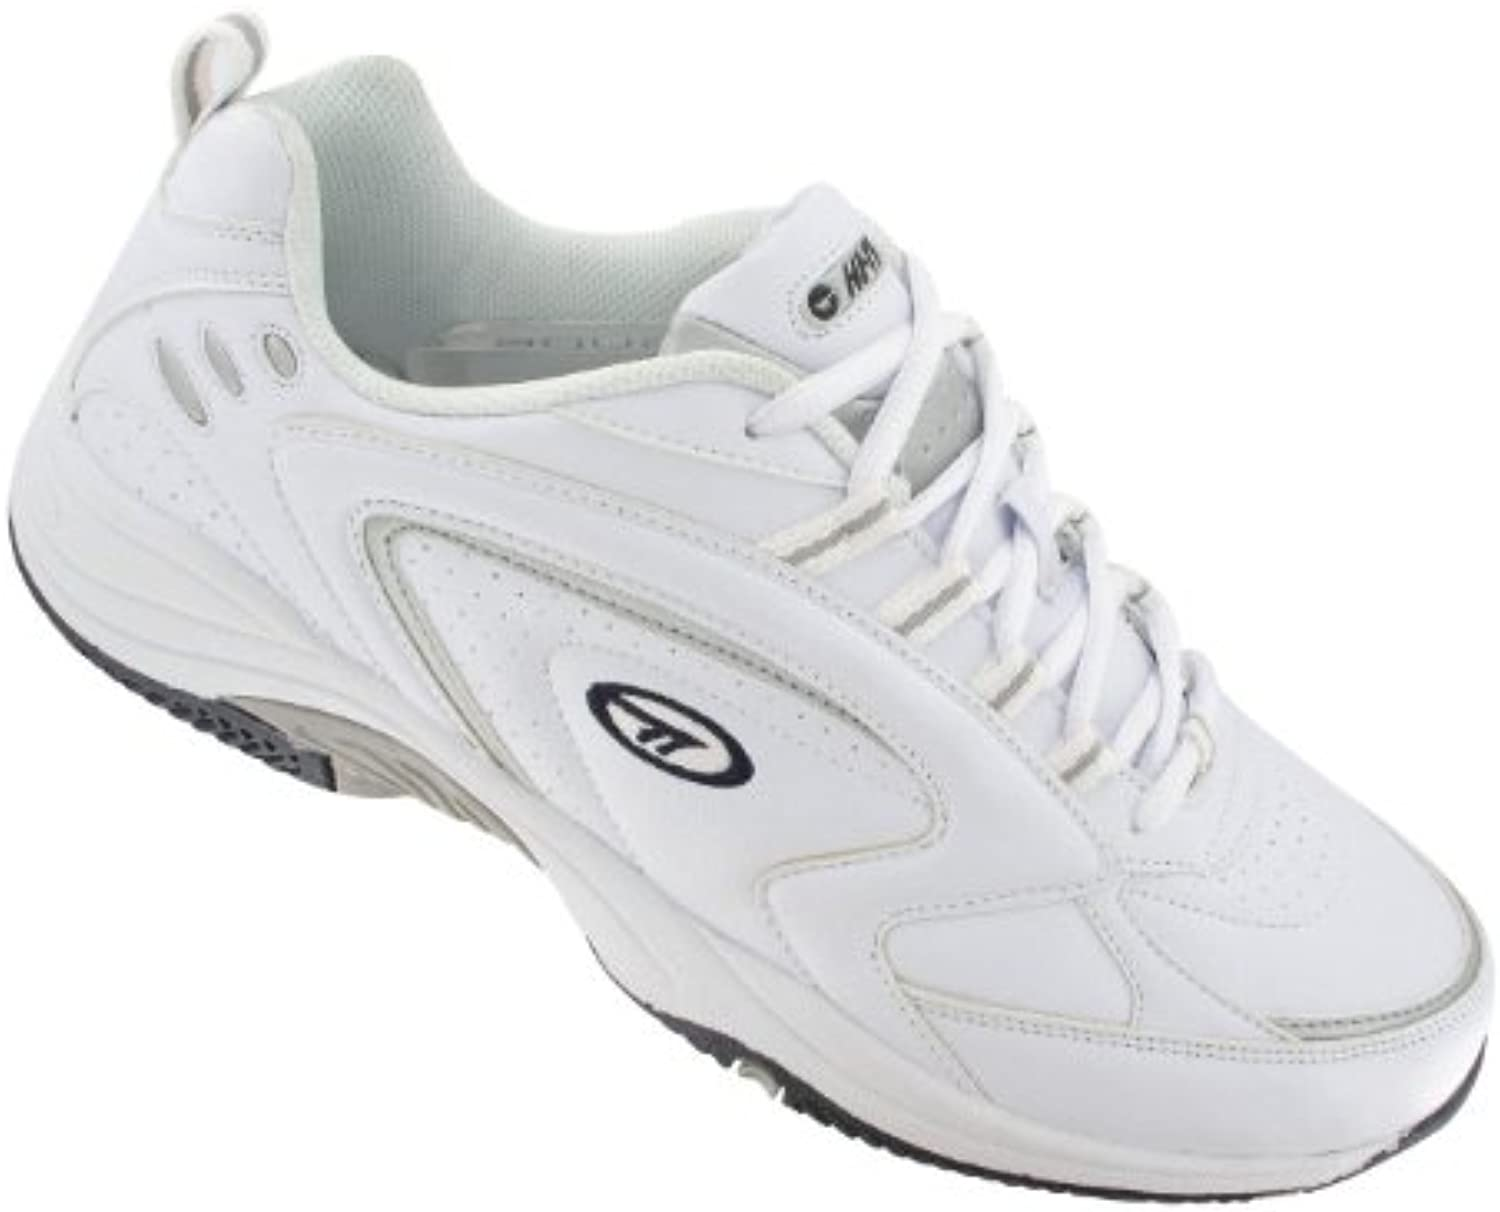 HI TECH BLAST BLAST BLAST WHITE SPORTS GYM TRAINER UK6 EU(39) TO UK16 (EU50) 17a12e